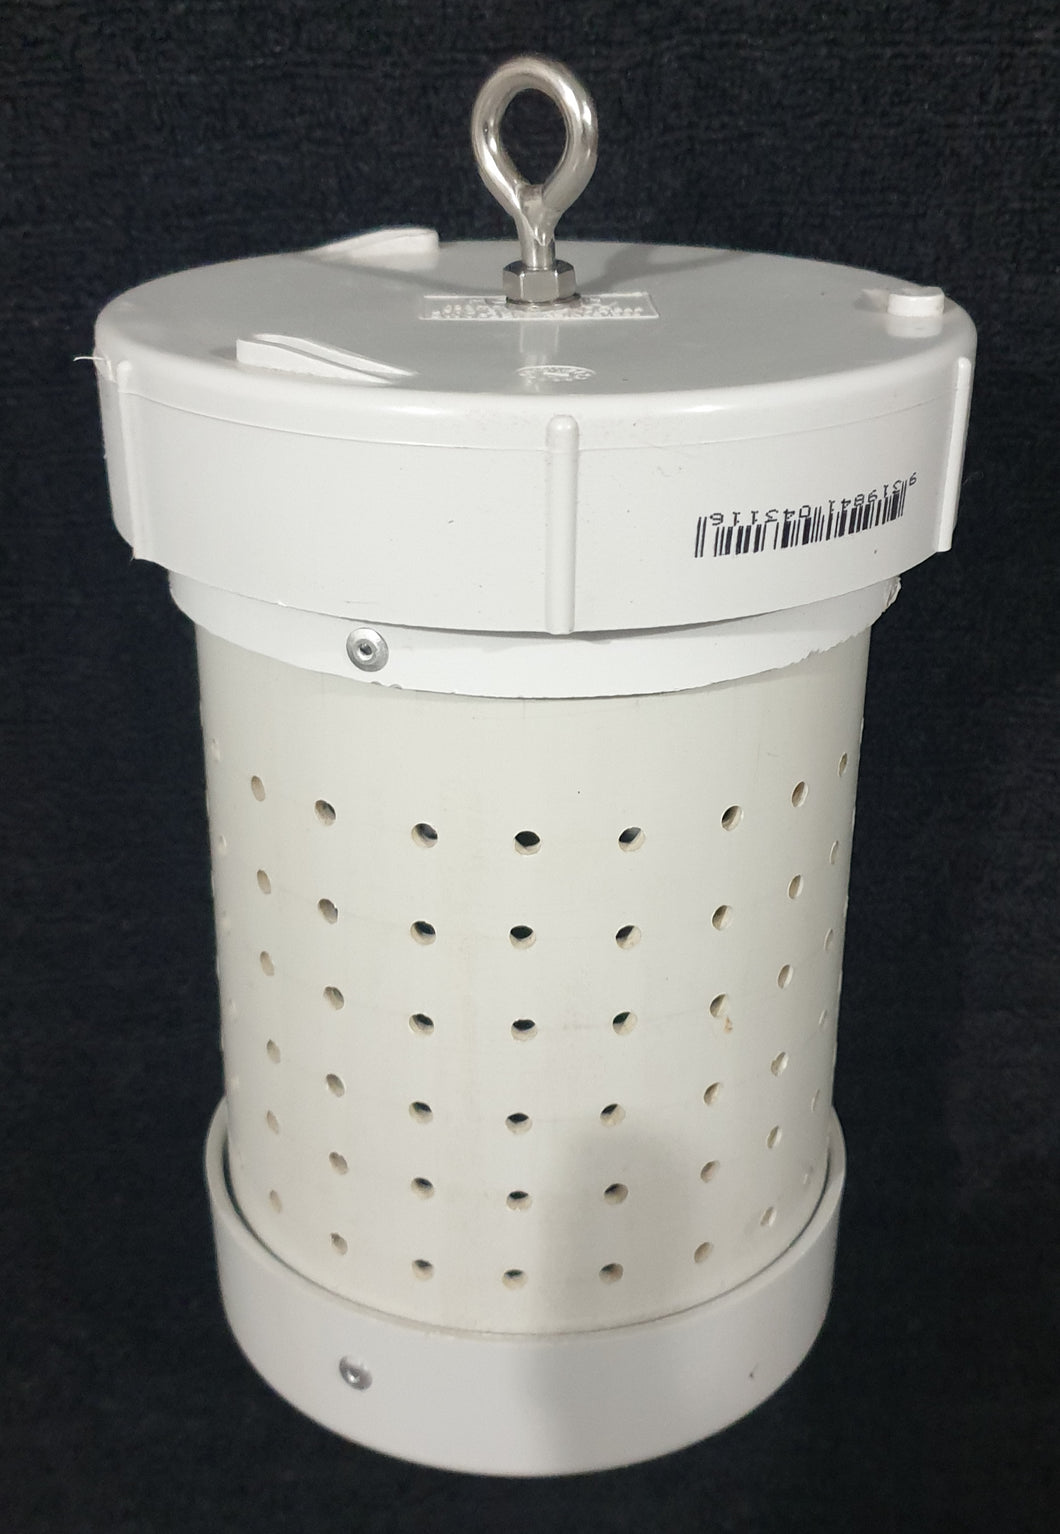 BURLEY POT - 1.2KG LEAD BASE – SMALL WITH SMALL HOLES